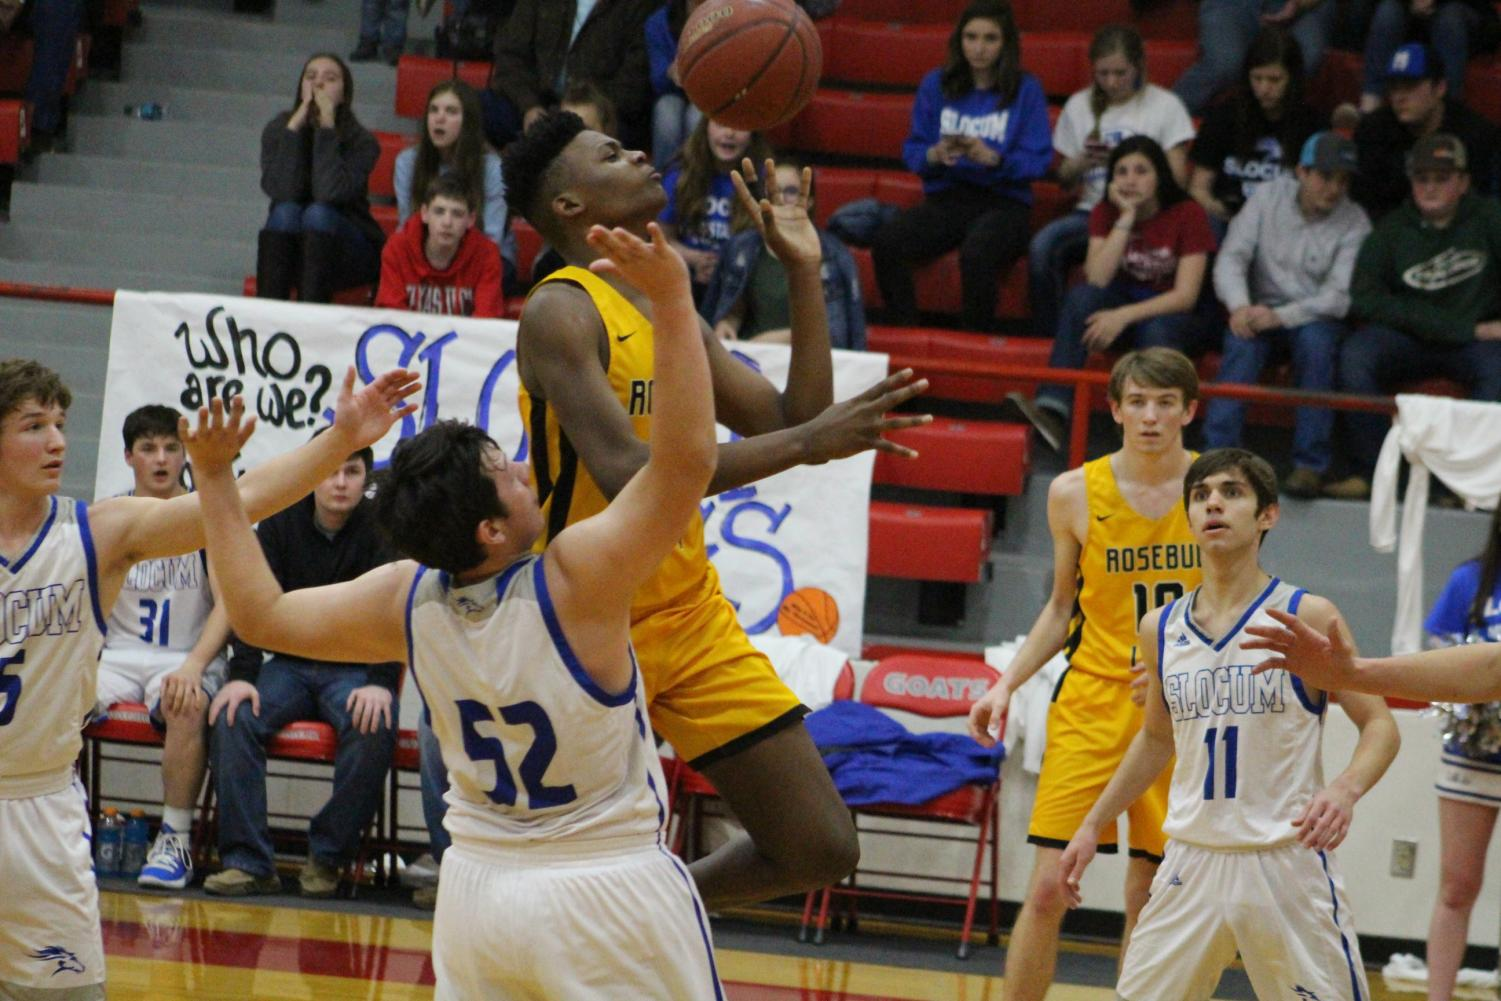 Steven Buhl goes up for a shot during the Cougars' loss to Slocum in the area playoffs.